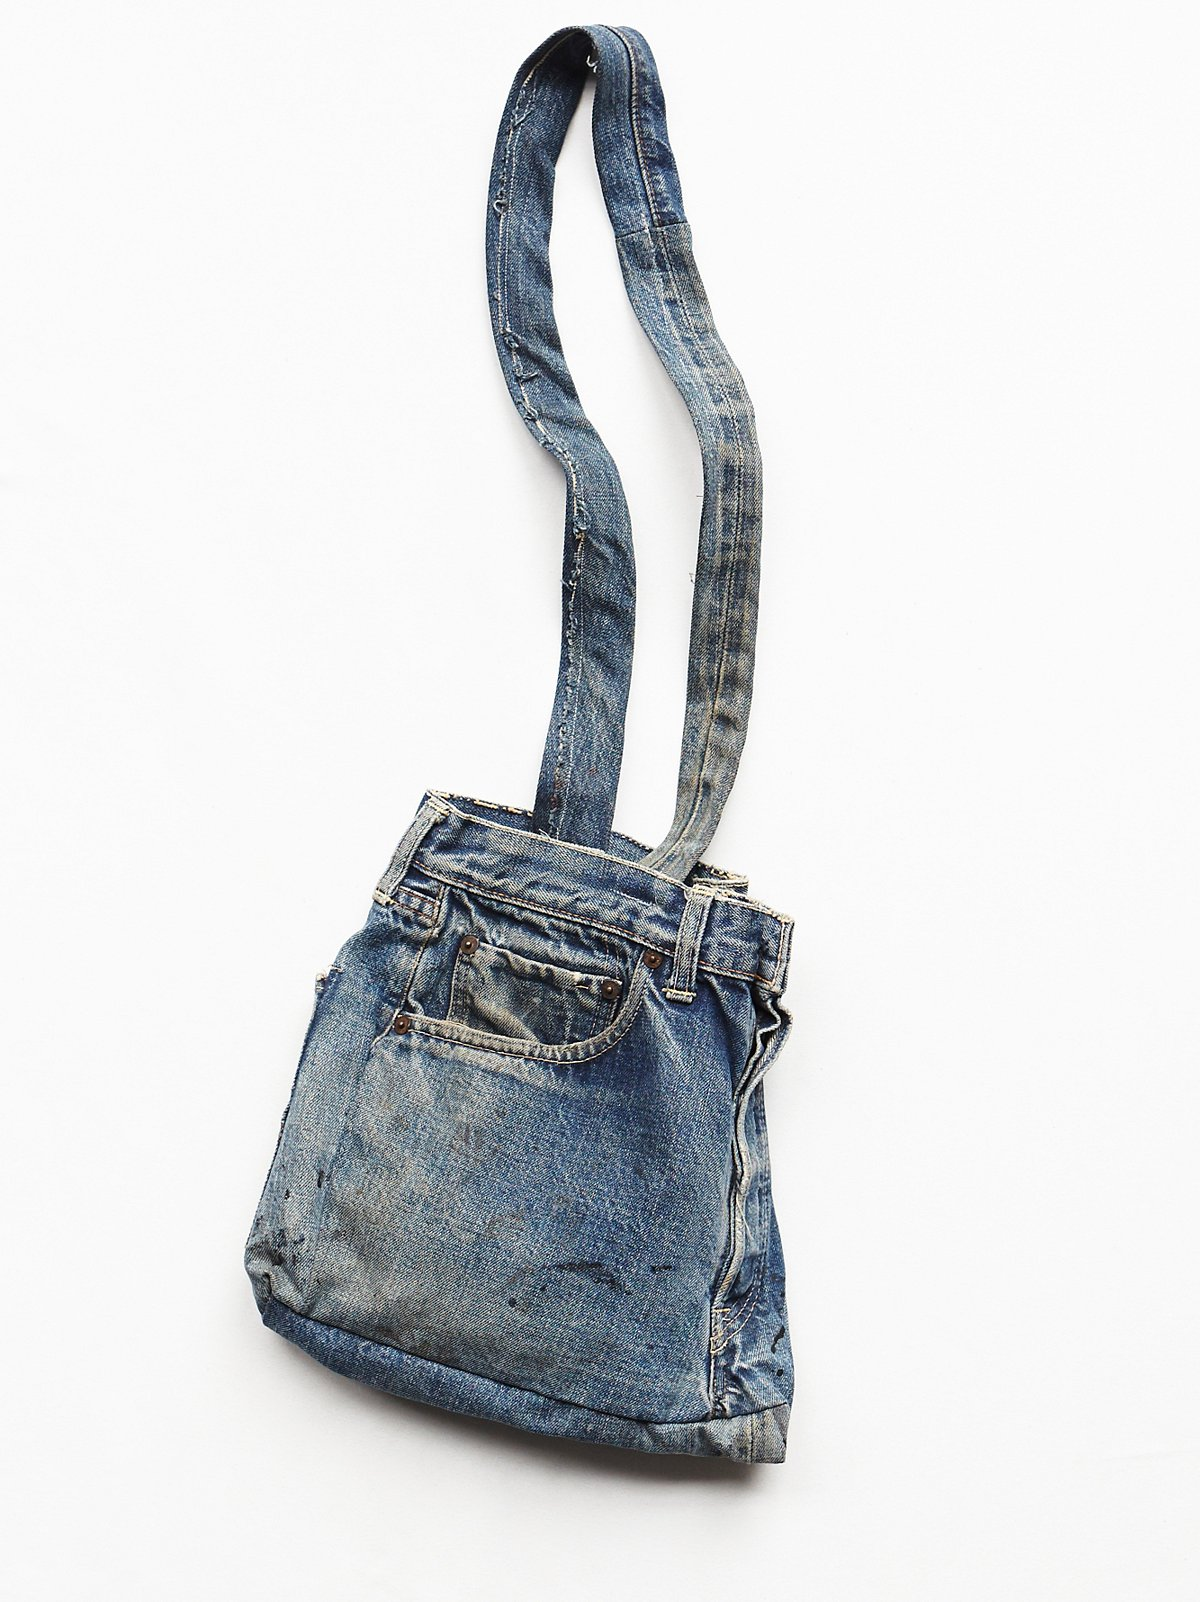 Vintage Handmade Denim Bag